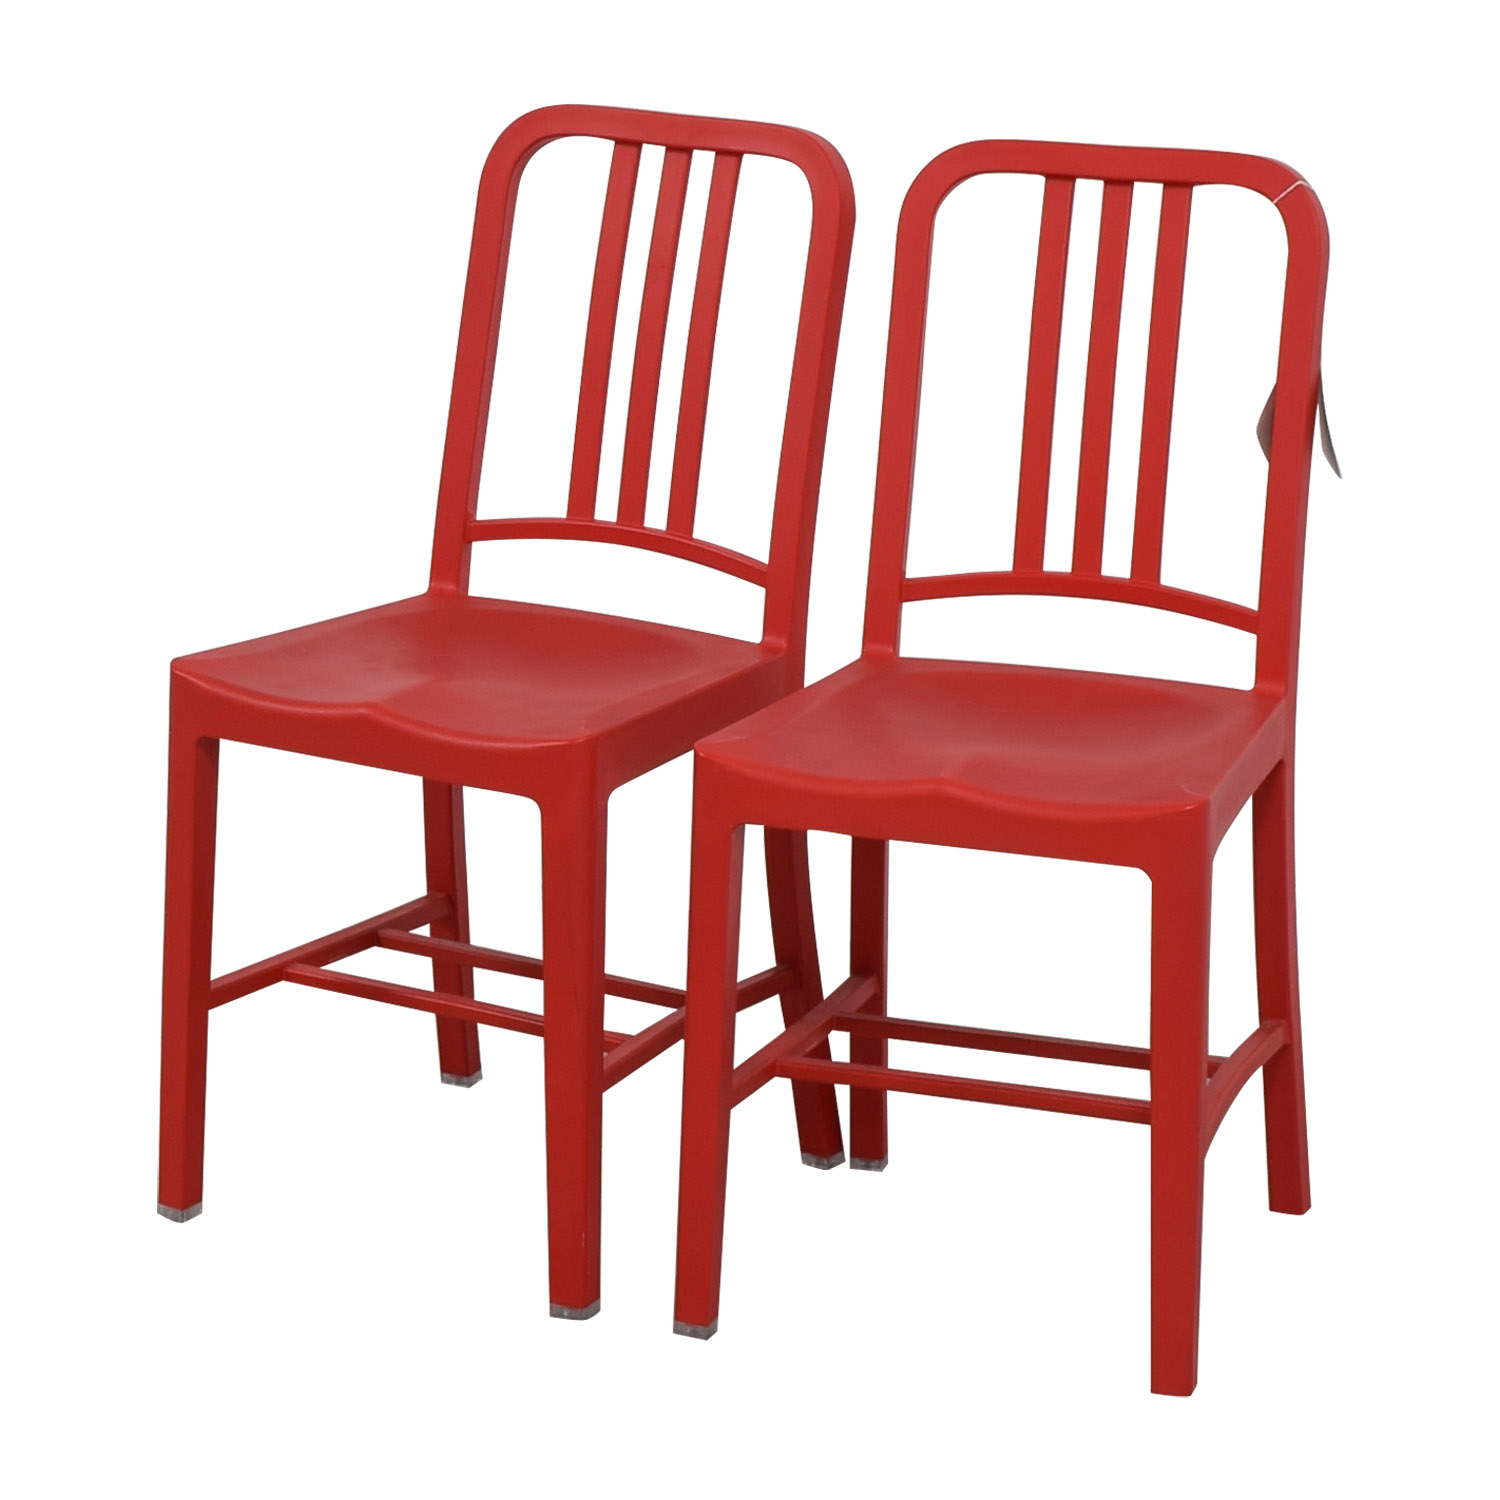 shop Emeco 111 Navy Recycled Red Chairs Emeco Chairs